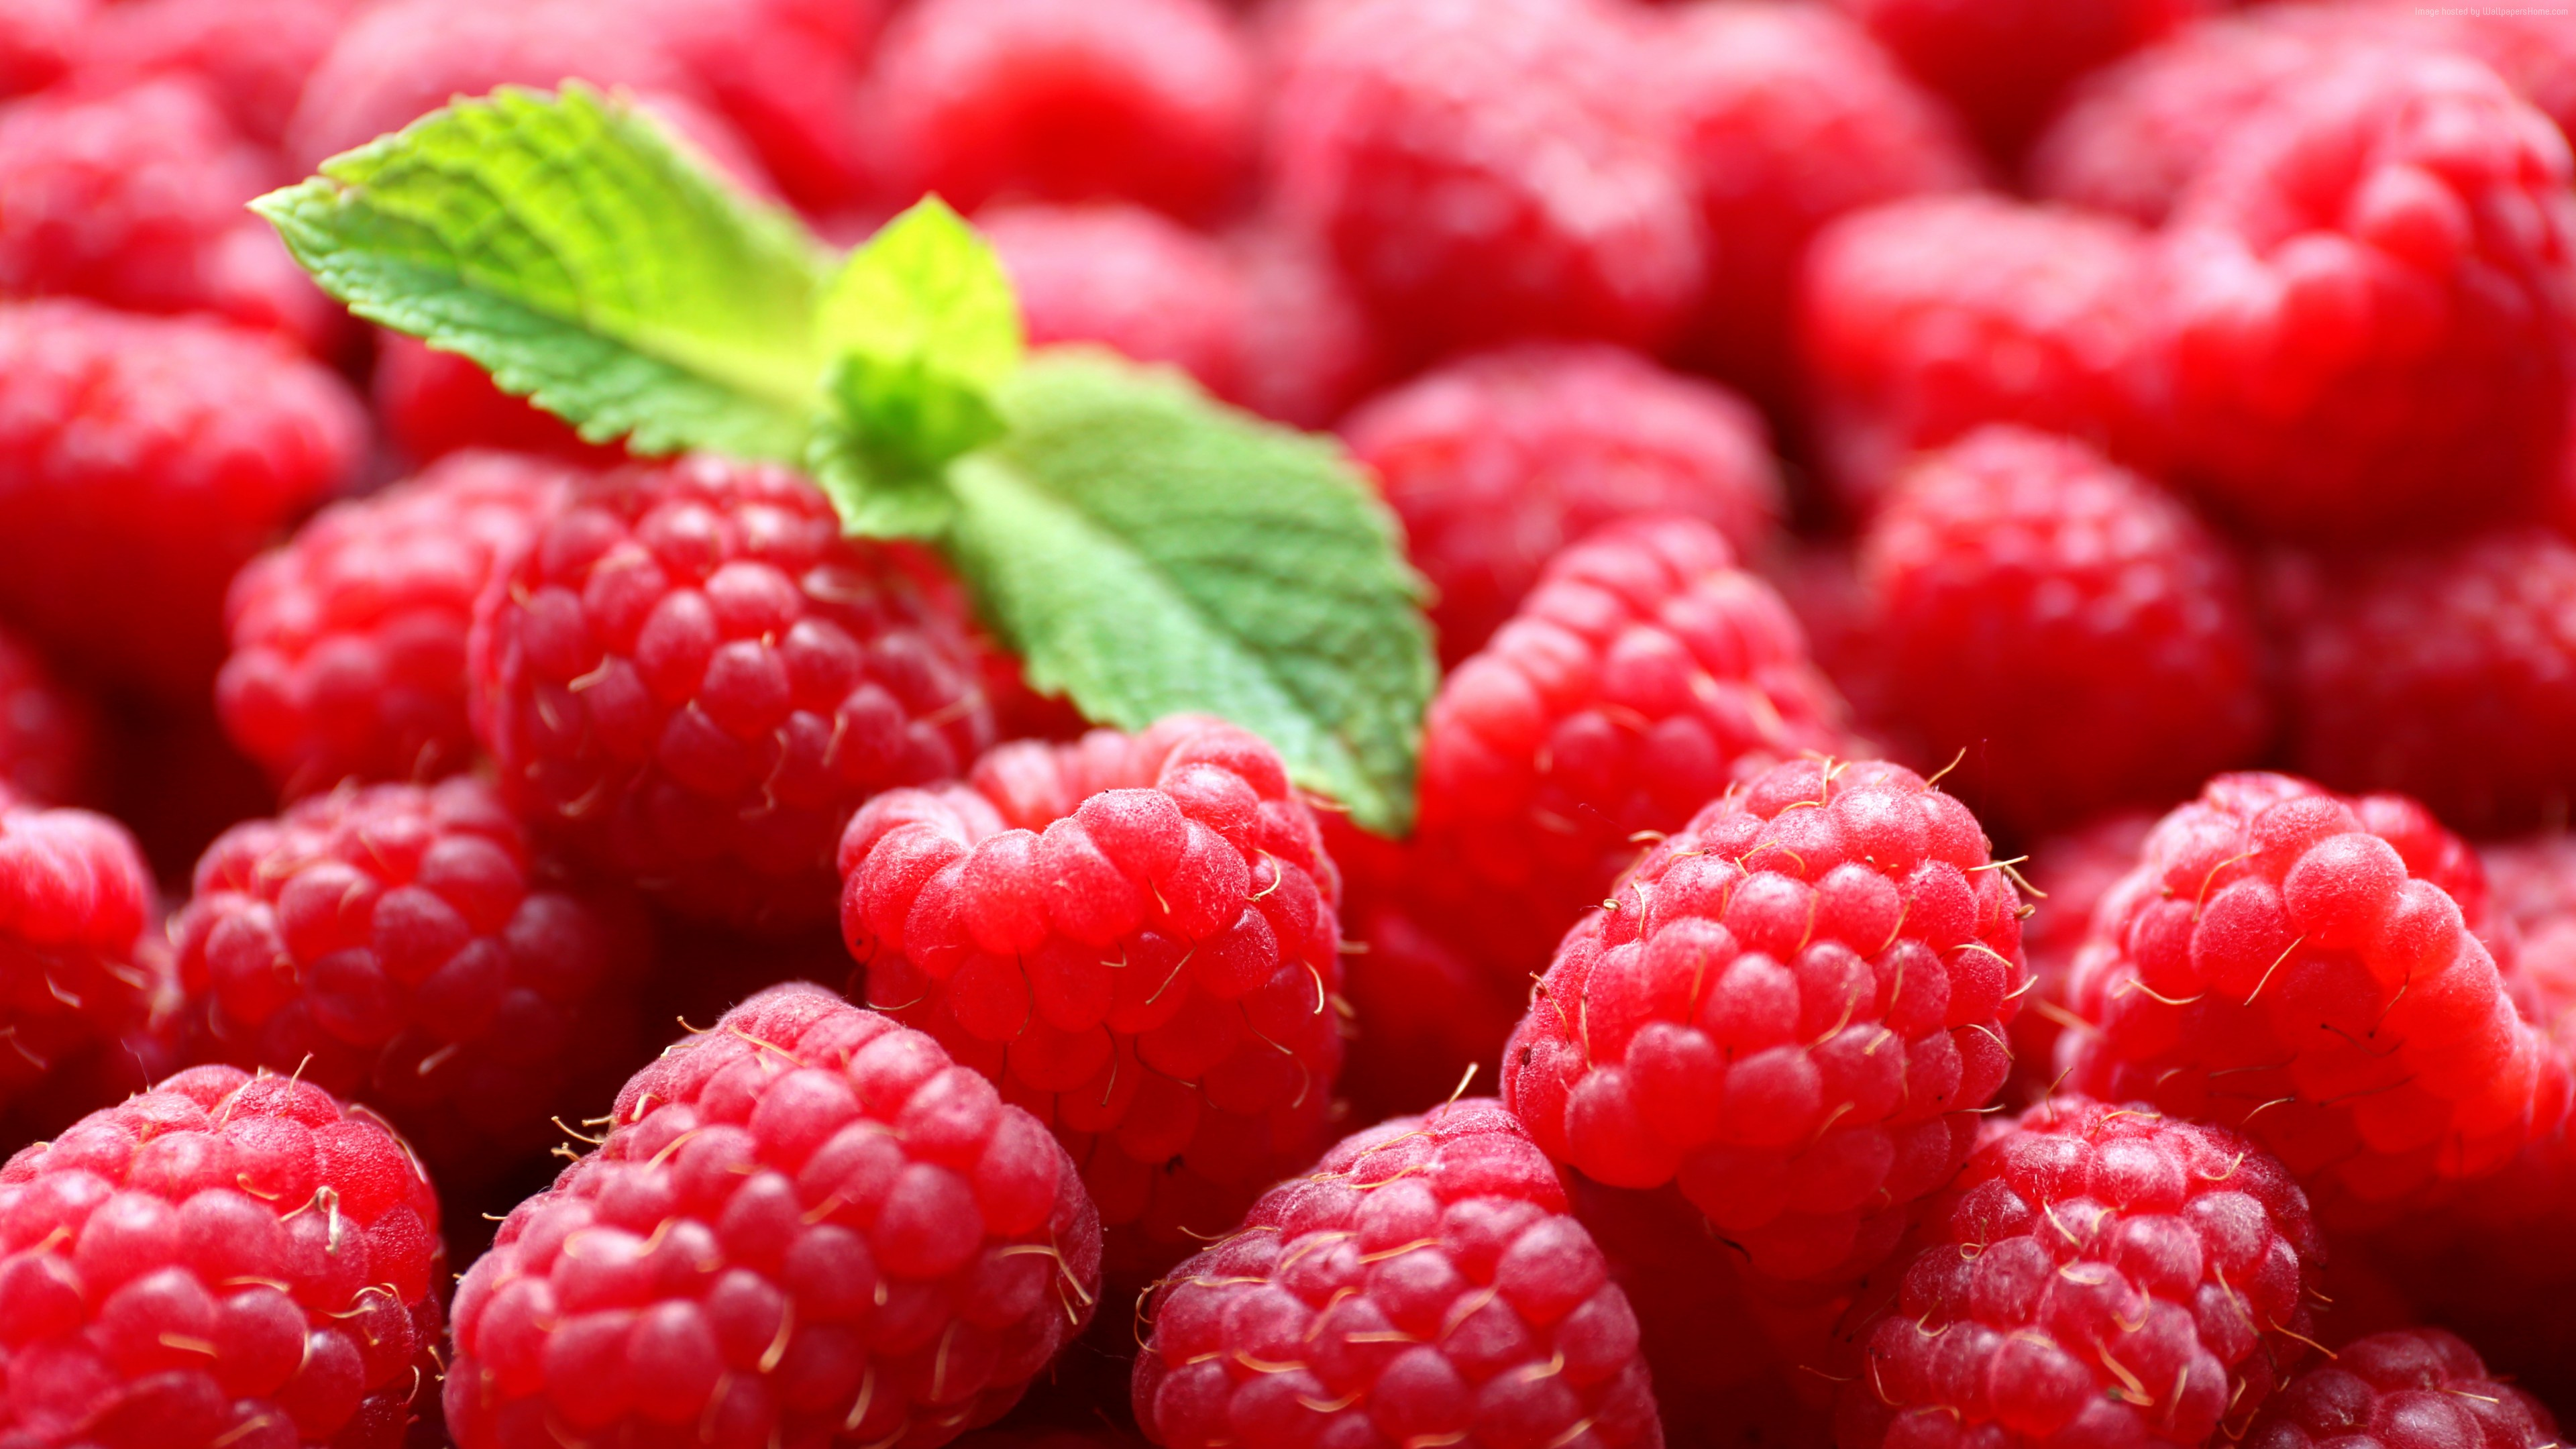 Wallpaper raspberries, delicious, 5k, Food